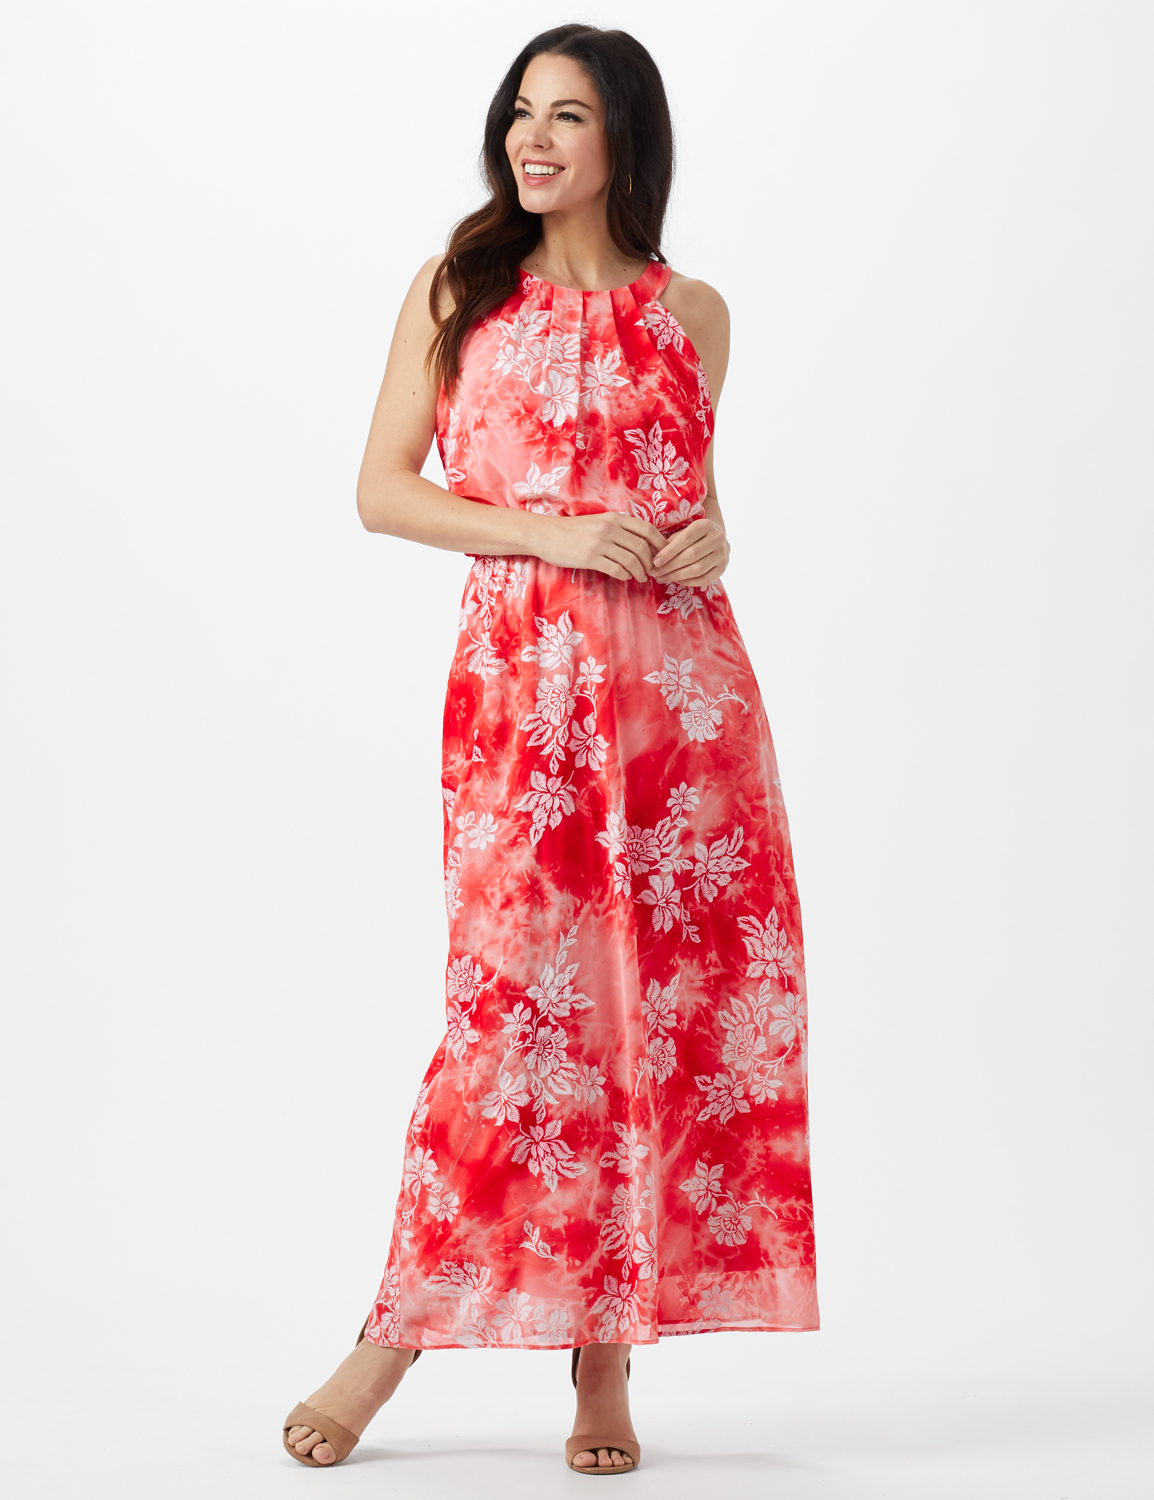 Petite Tie Dye  Floral Maxi Dress - Red - Front